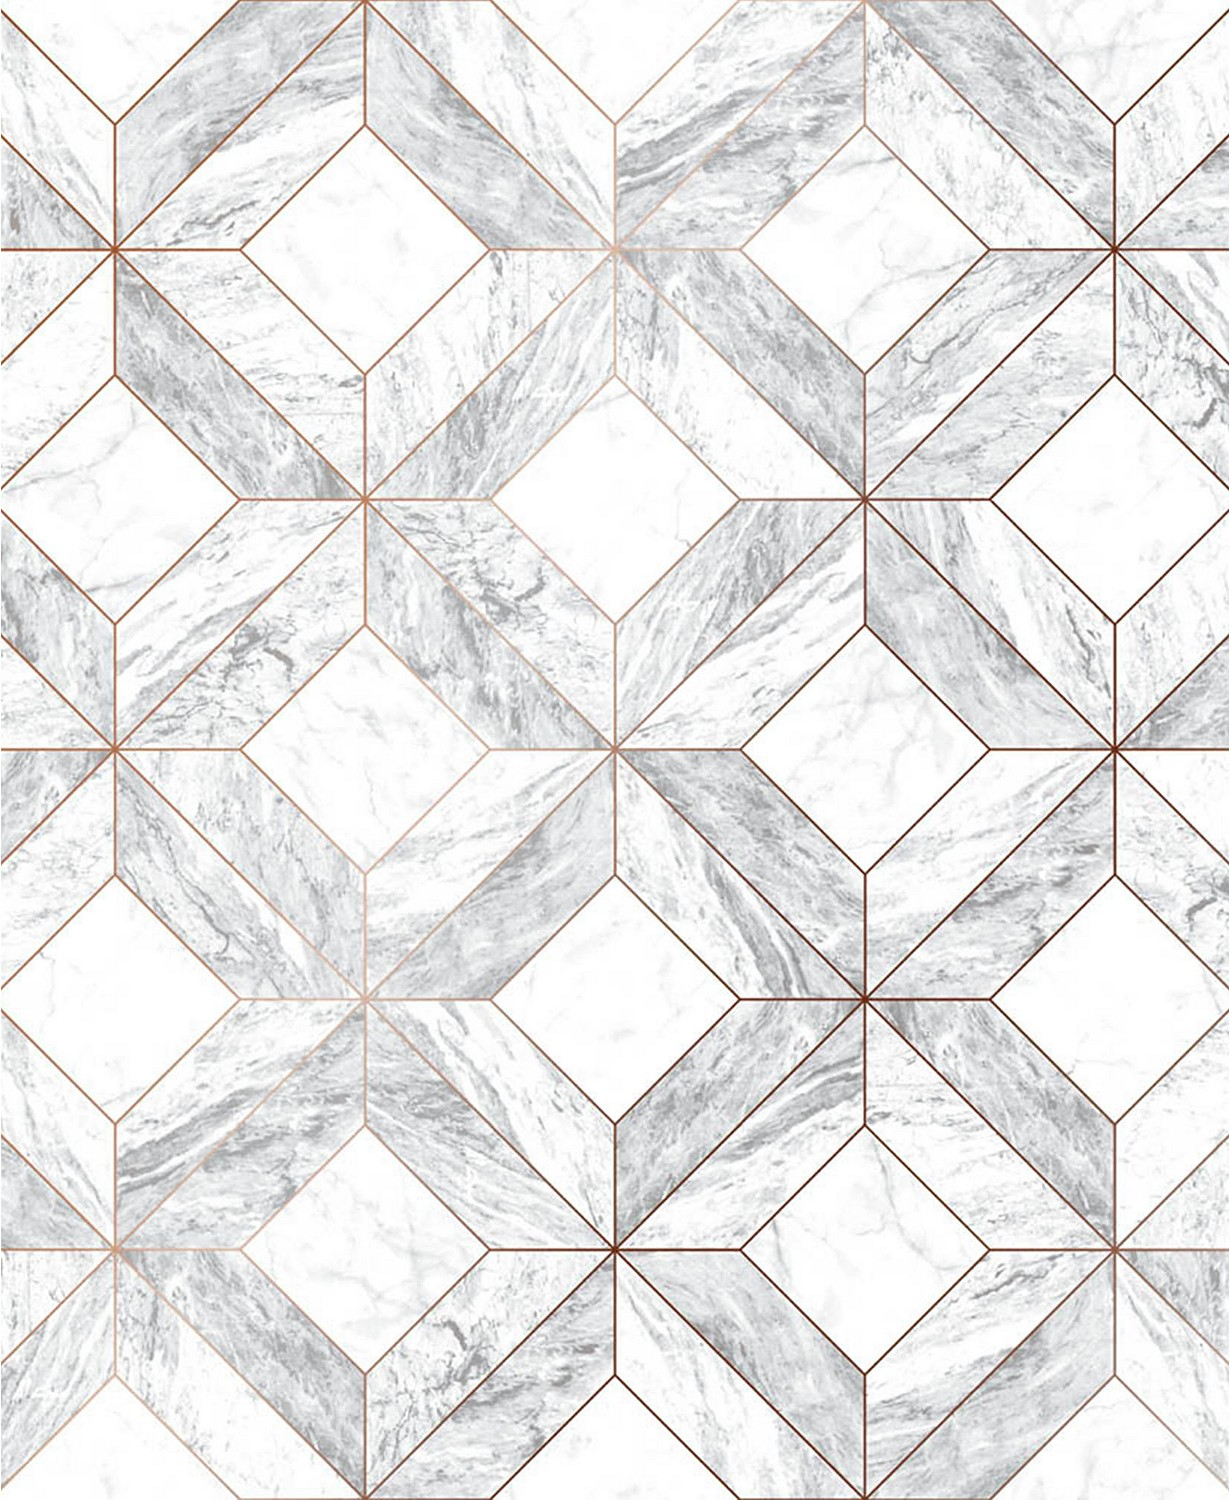 Bathroom Marble Mosaic Wall Tiles Price in Lahore Pakistan